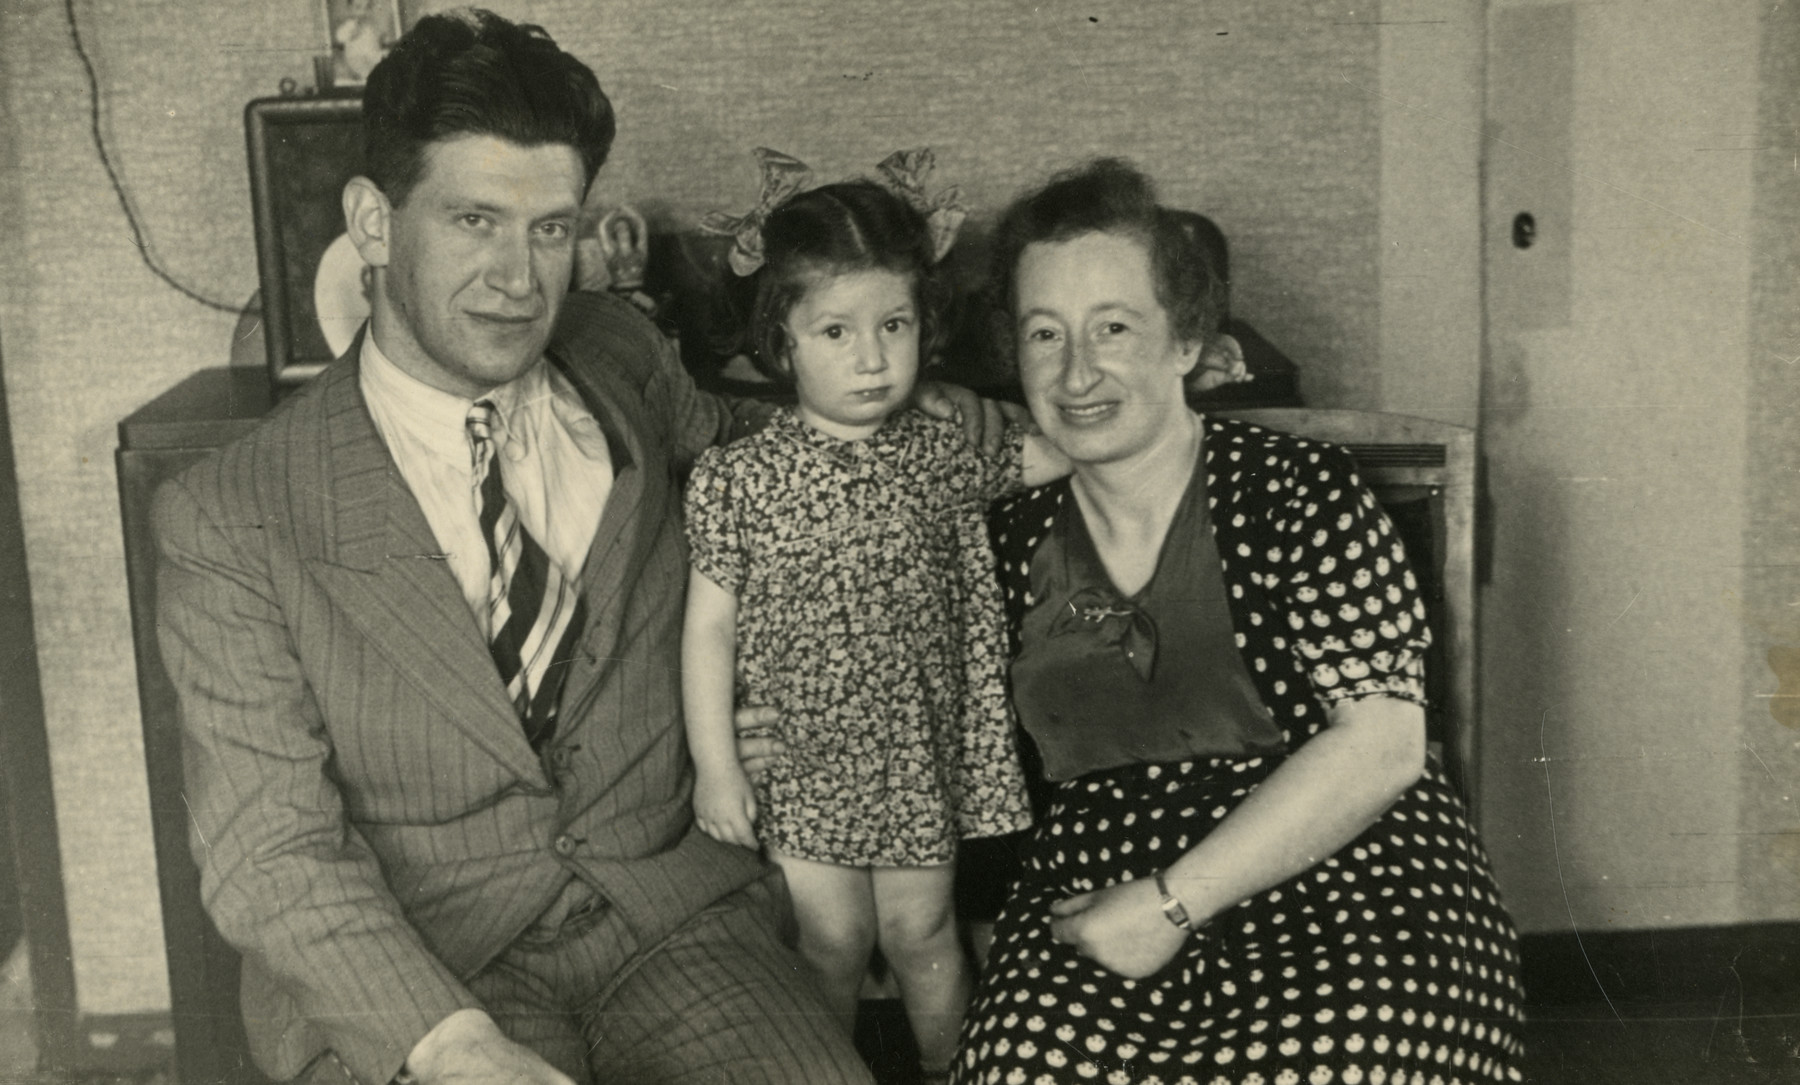 Postwar portrait of the van West family, a Dutch-Jewish family who survived in hiding.  Pictured are Mozes, Rosa and Rachel van West-van den Bergh.